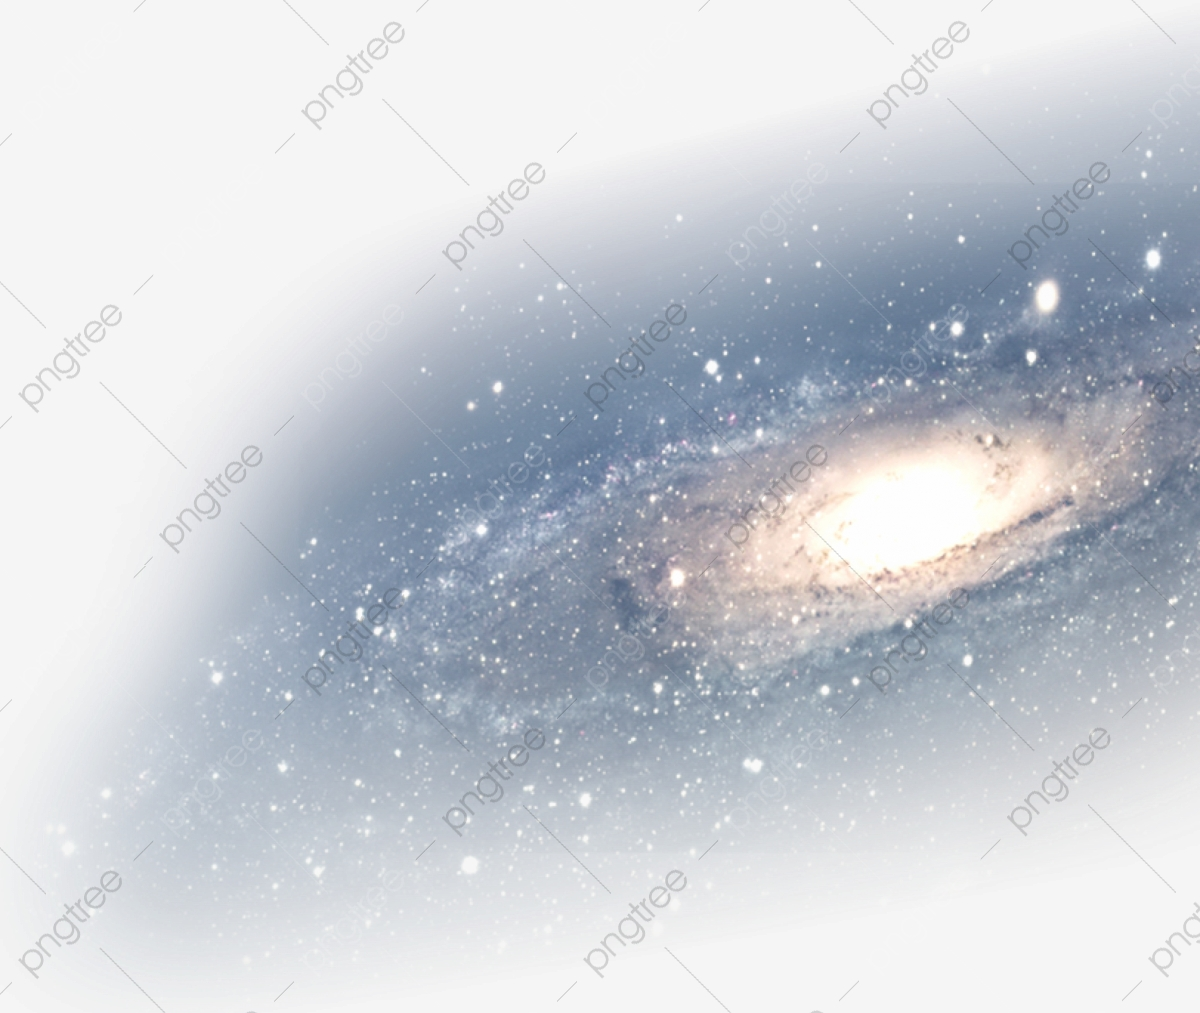 Galaxy Hd, Galaxy Clipart, Milky Way, Taobao Details Material PNG.